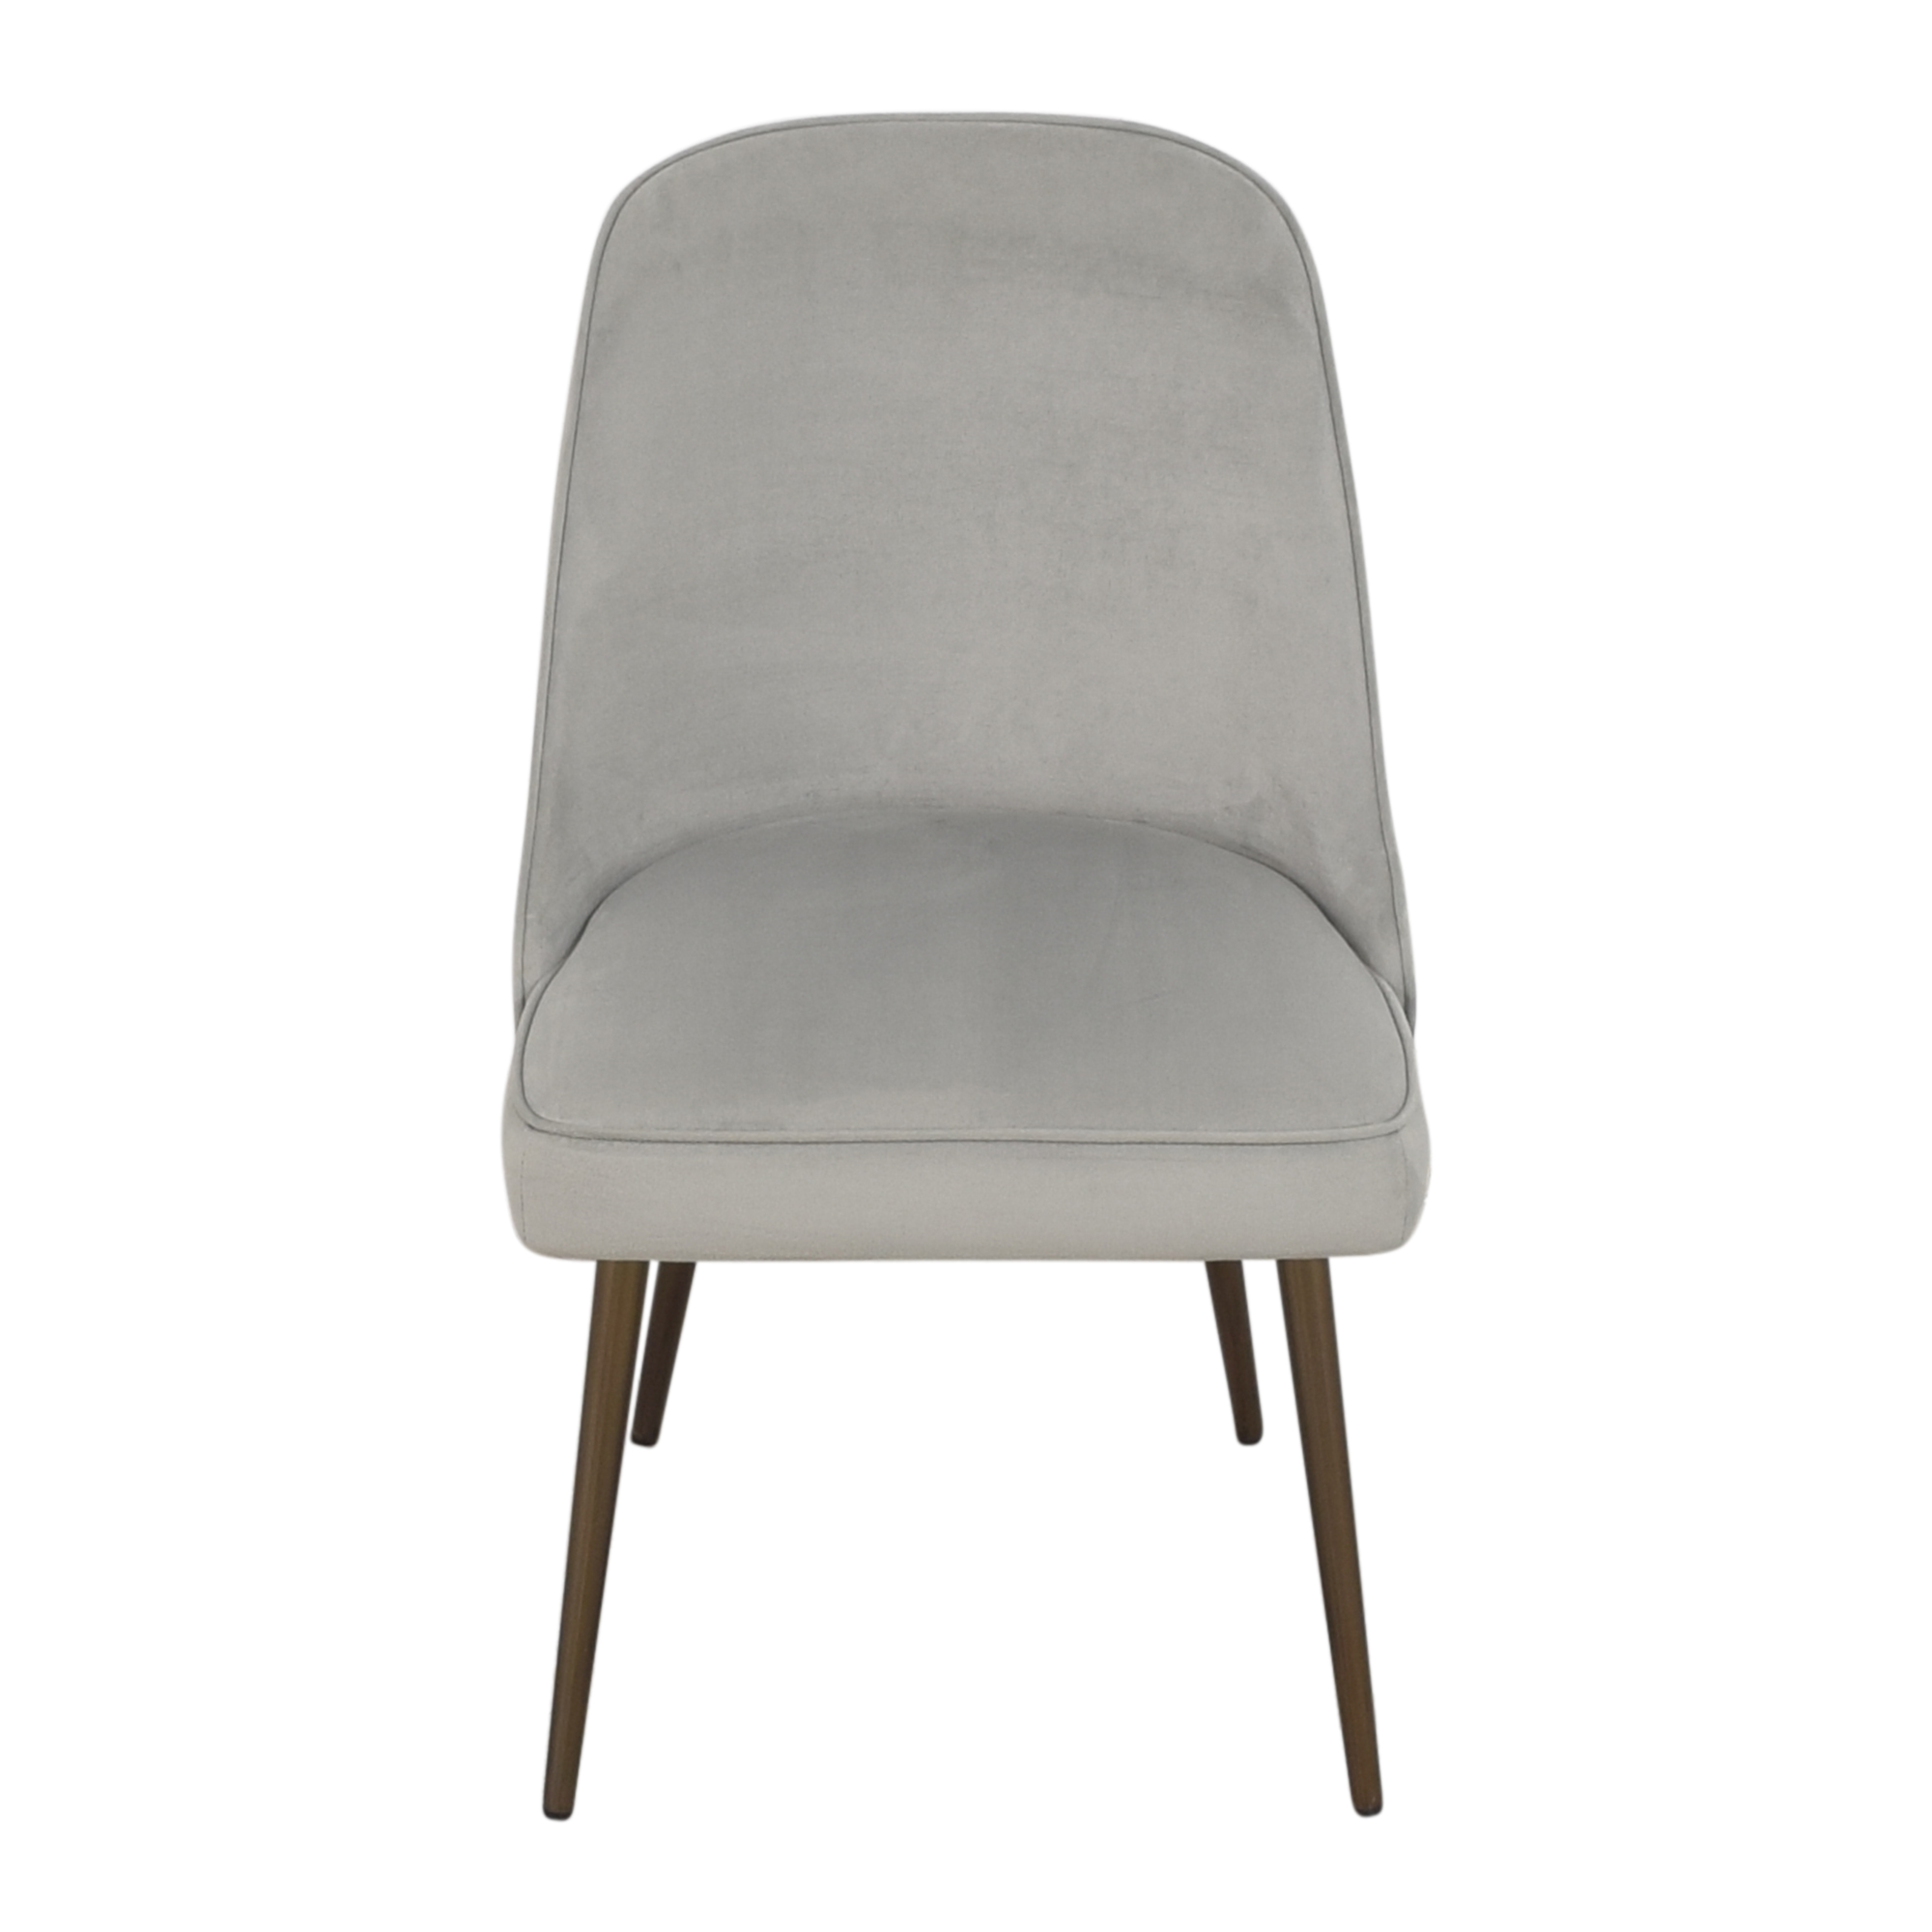 West Elm West Elm Mid Century Upholstered Dining Chair pa